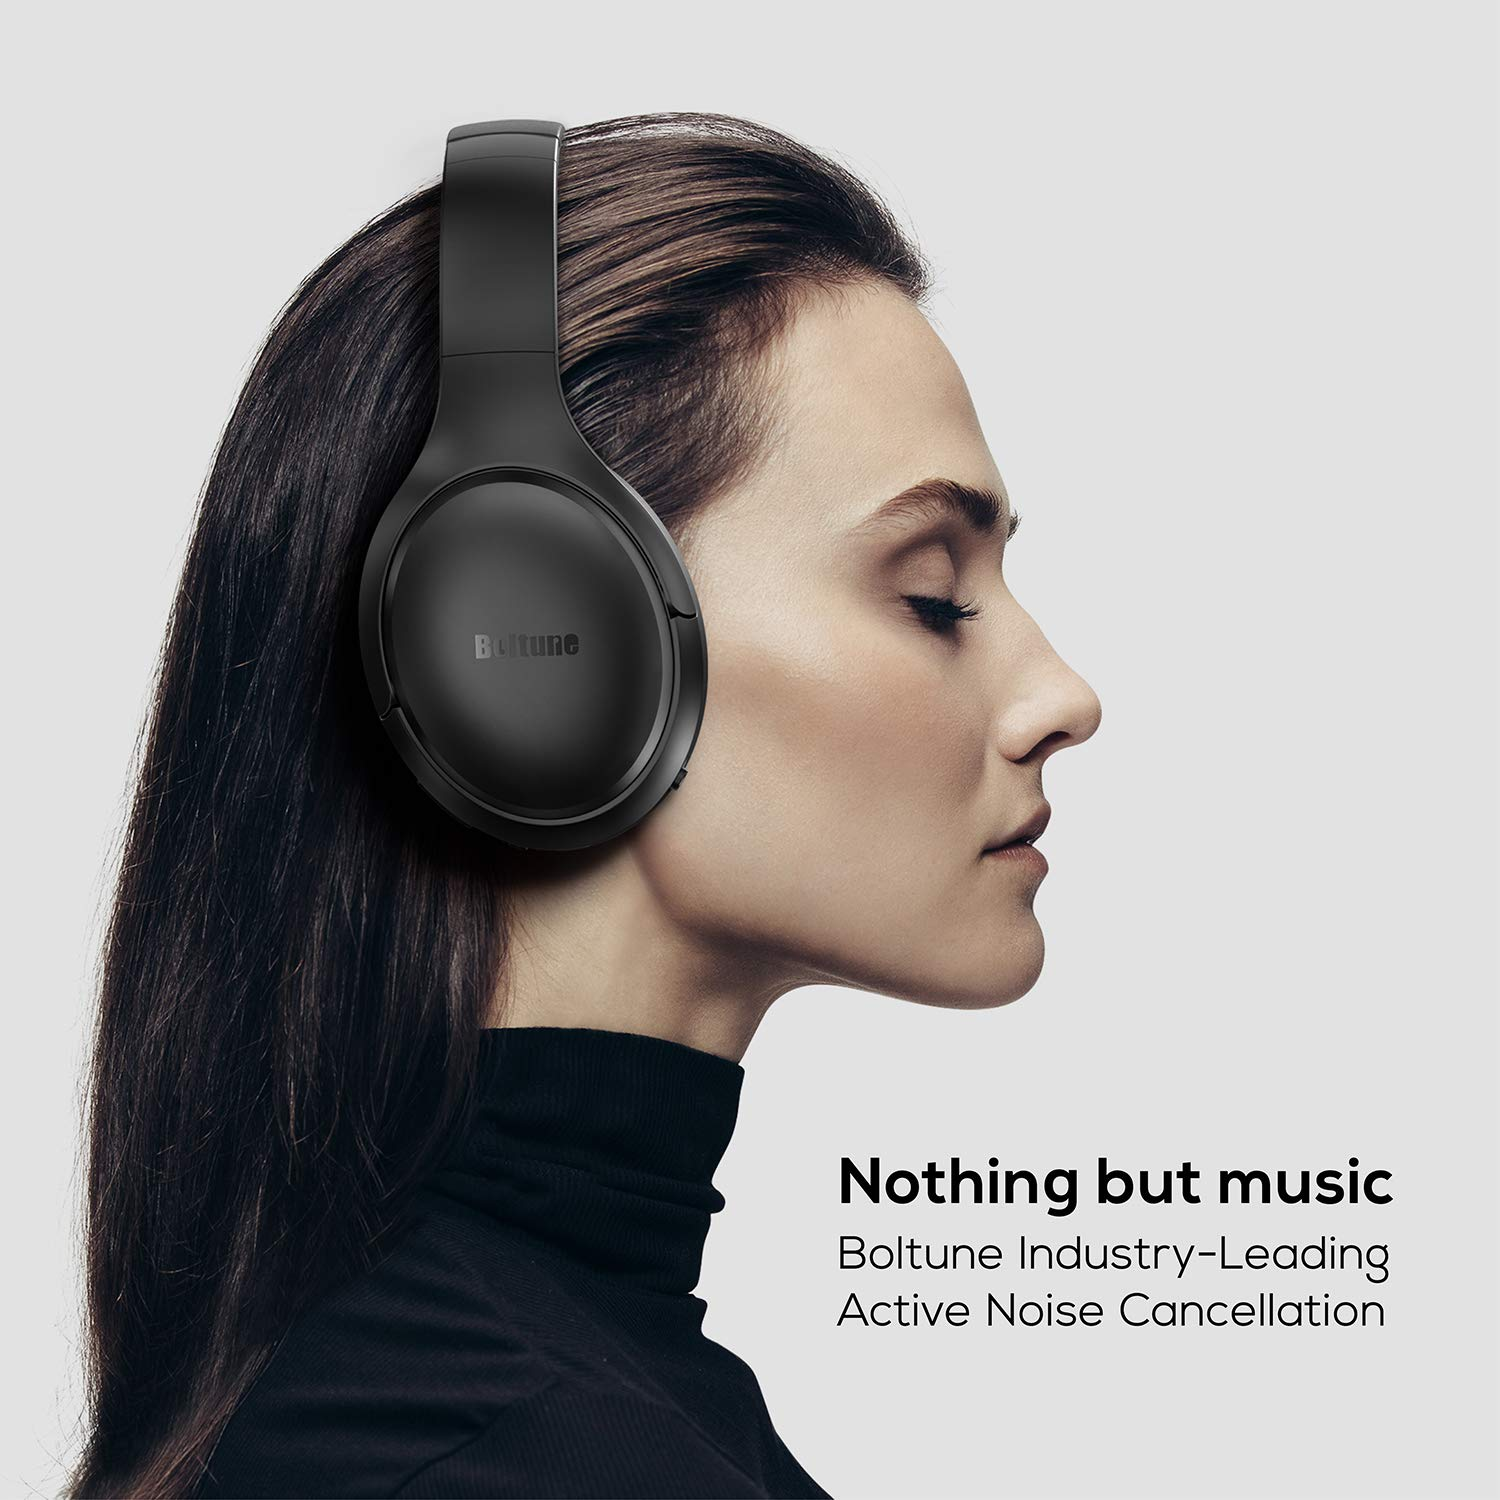 Active Noise Cancelling Headphones, Boltune Bluetooth 5.0 Over Ear Wireless Headphones with Mic Deep Bass, Comfortable Protein Earpads 30H Playtime for Travel Work TV PC Cellphone by Boltune (Image #3)